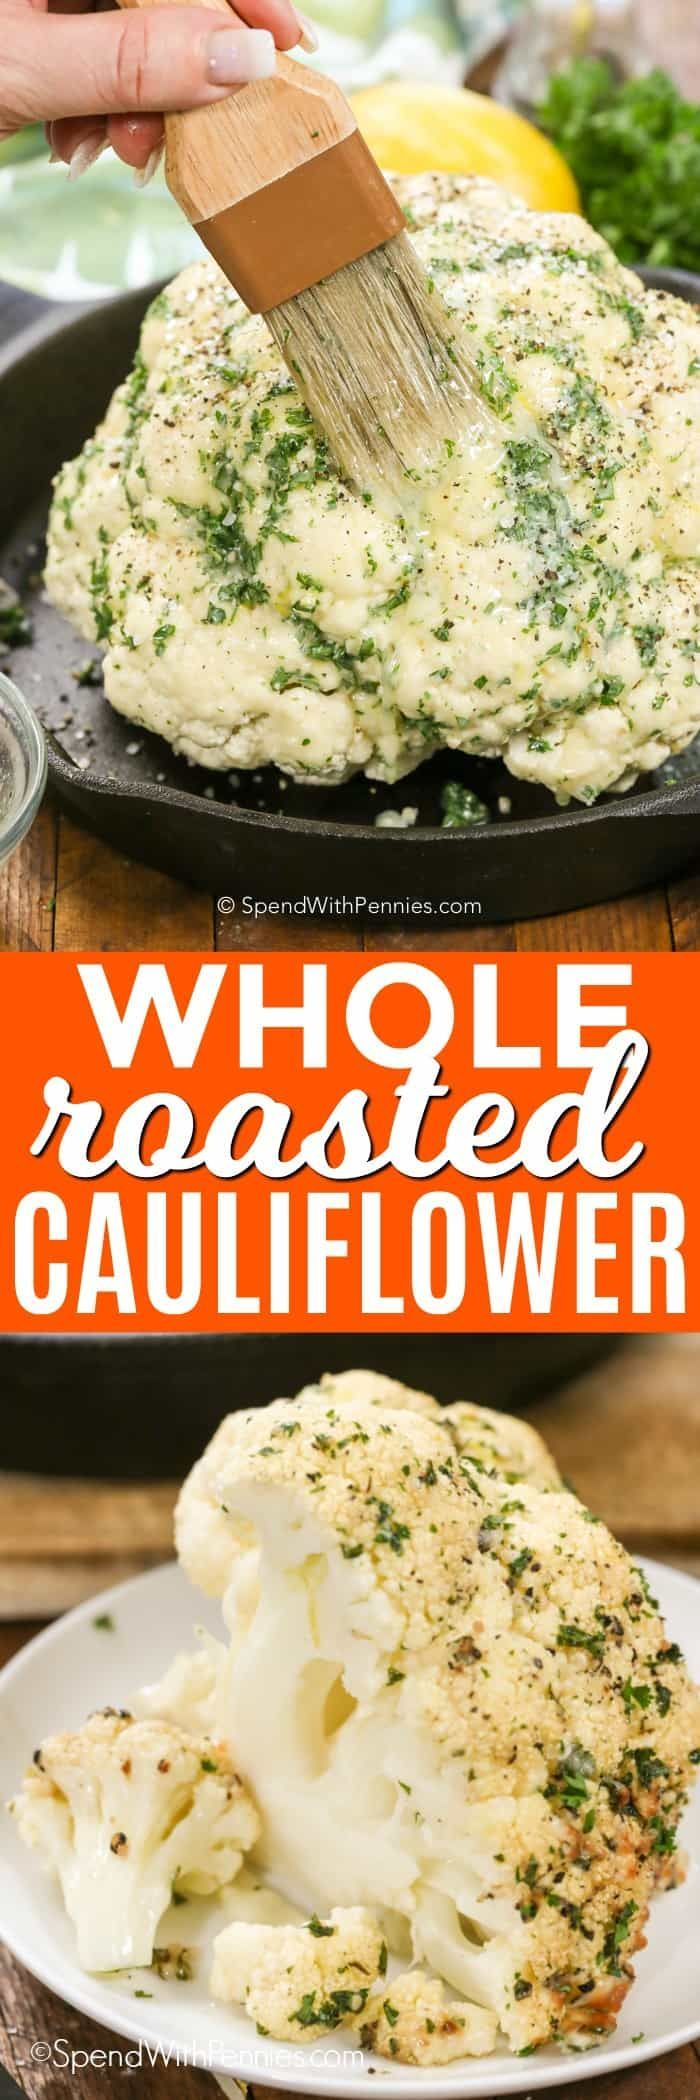 Oven roasted cauliflower is a super easy and delicious way to prepare cauliflower!